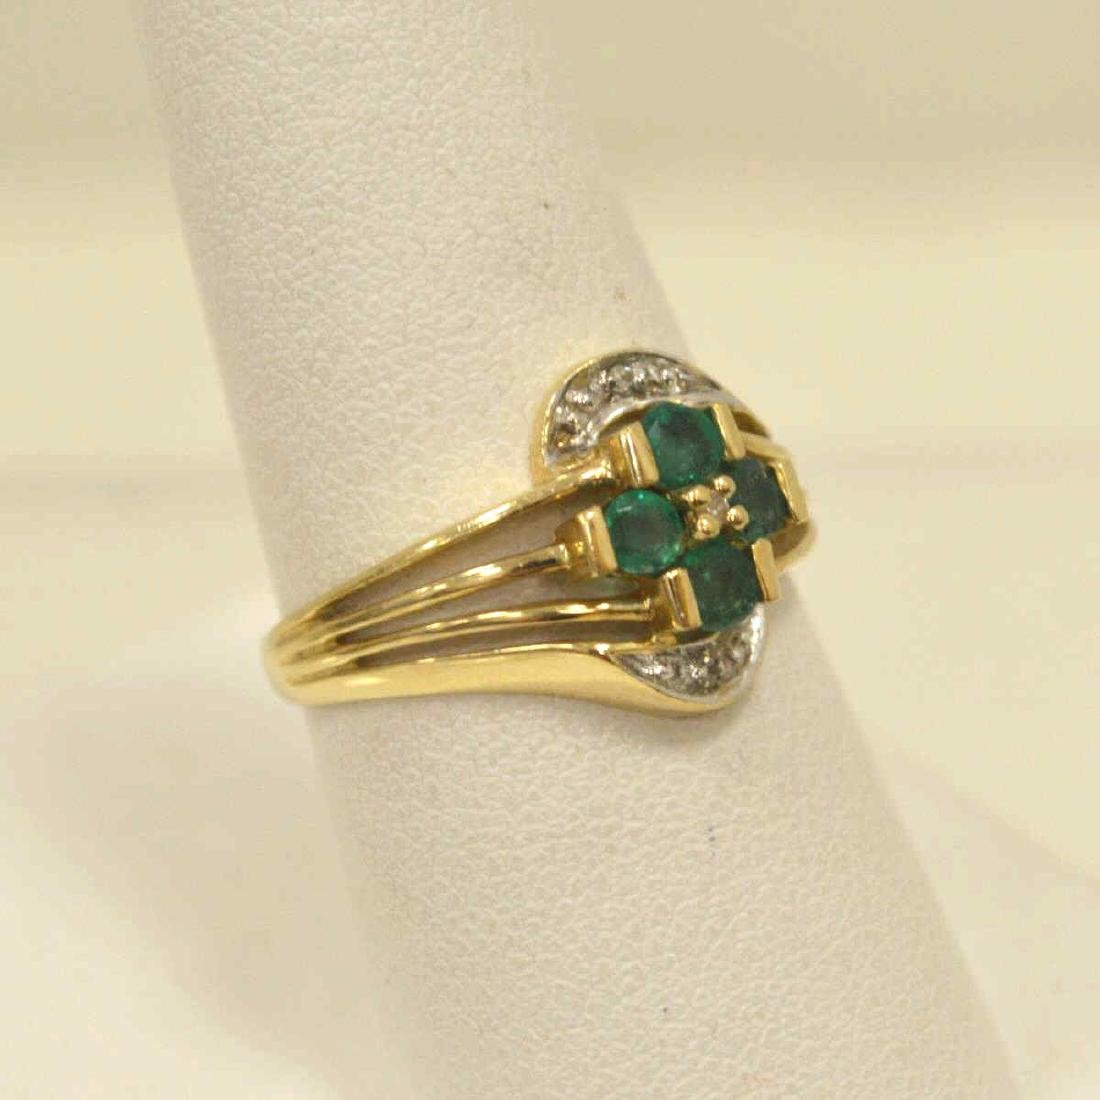 10kt yellow gold emerald and diamond ring - 2